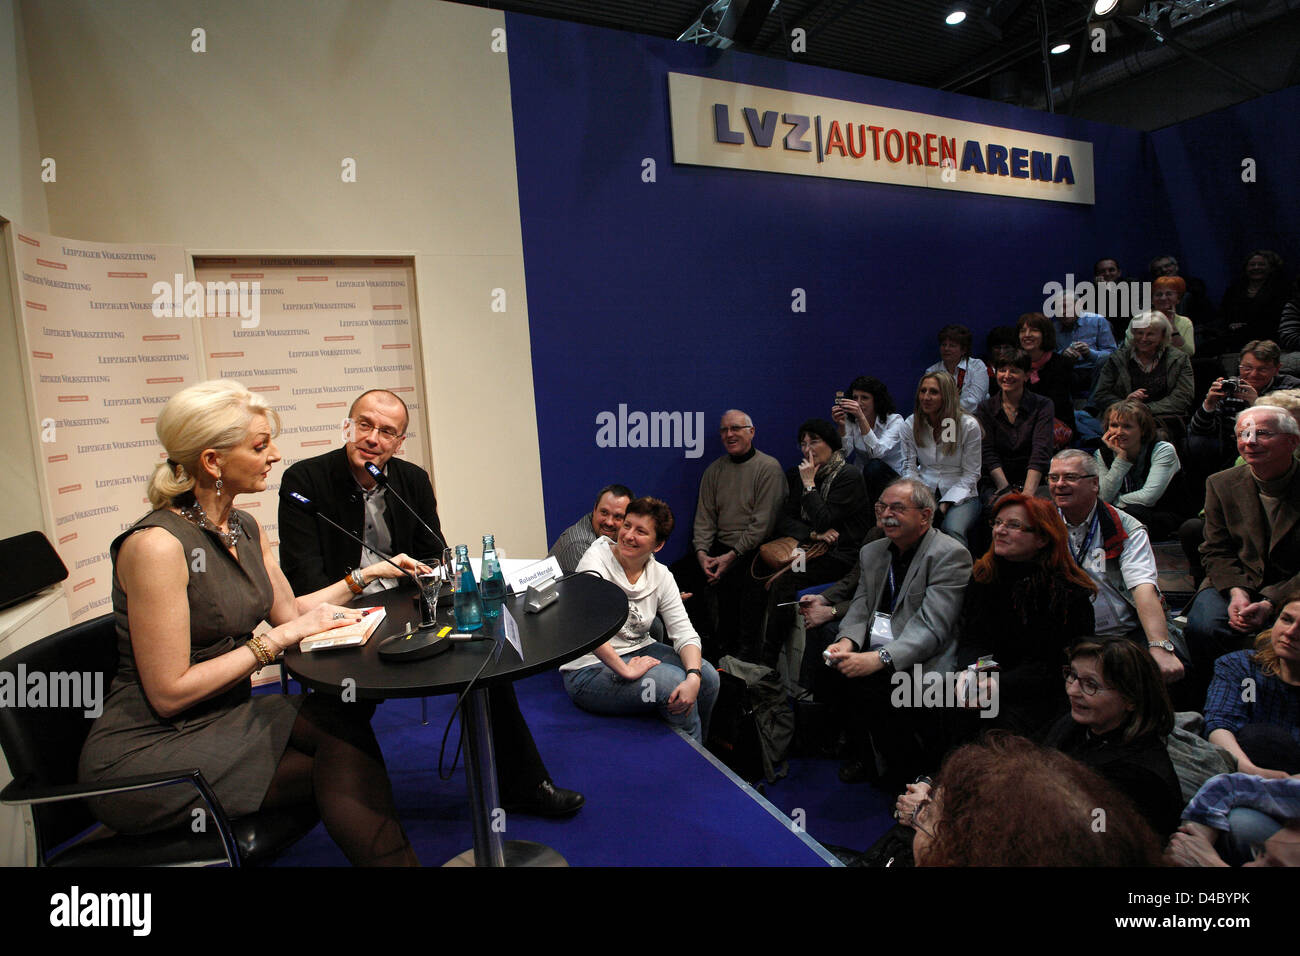 Leipzig, Germany, the authors LVZ-Arena at the Leipzig Book Fair - Stock Image